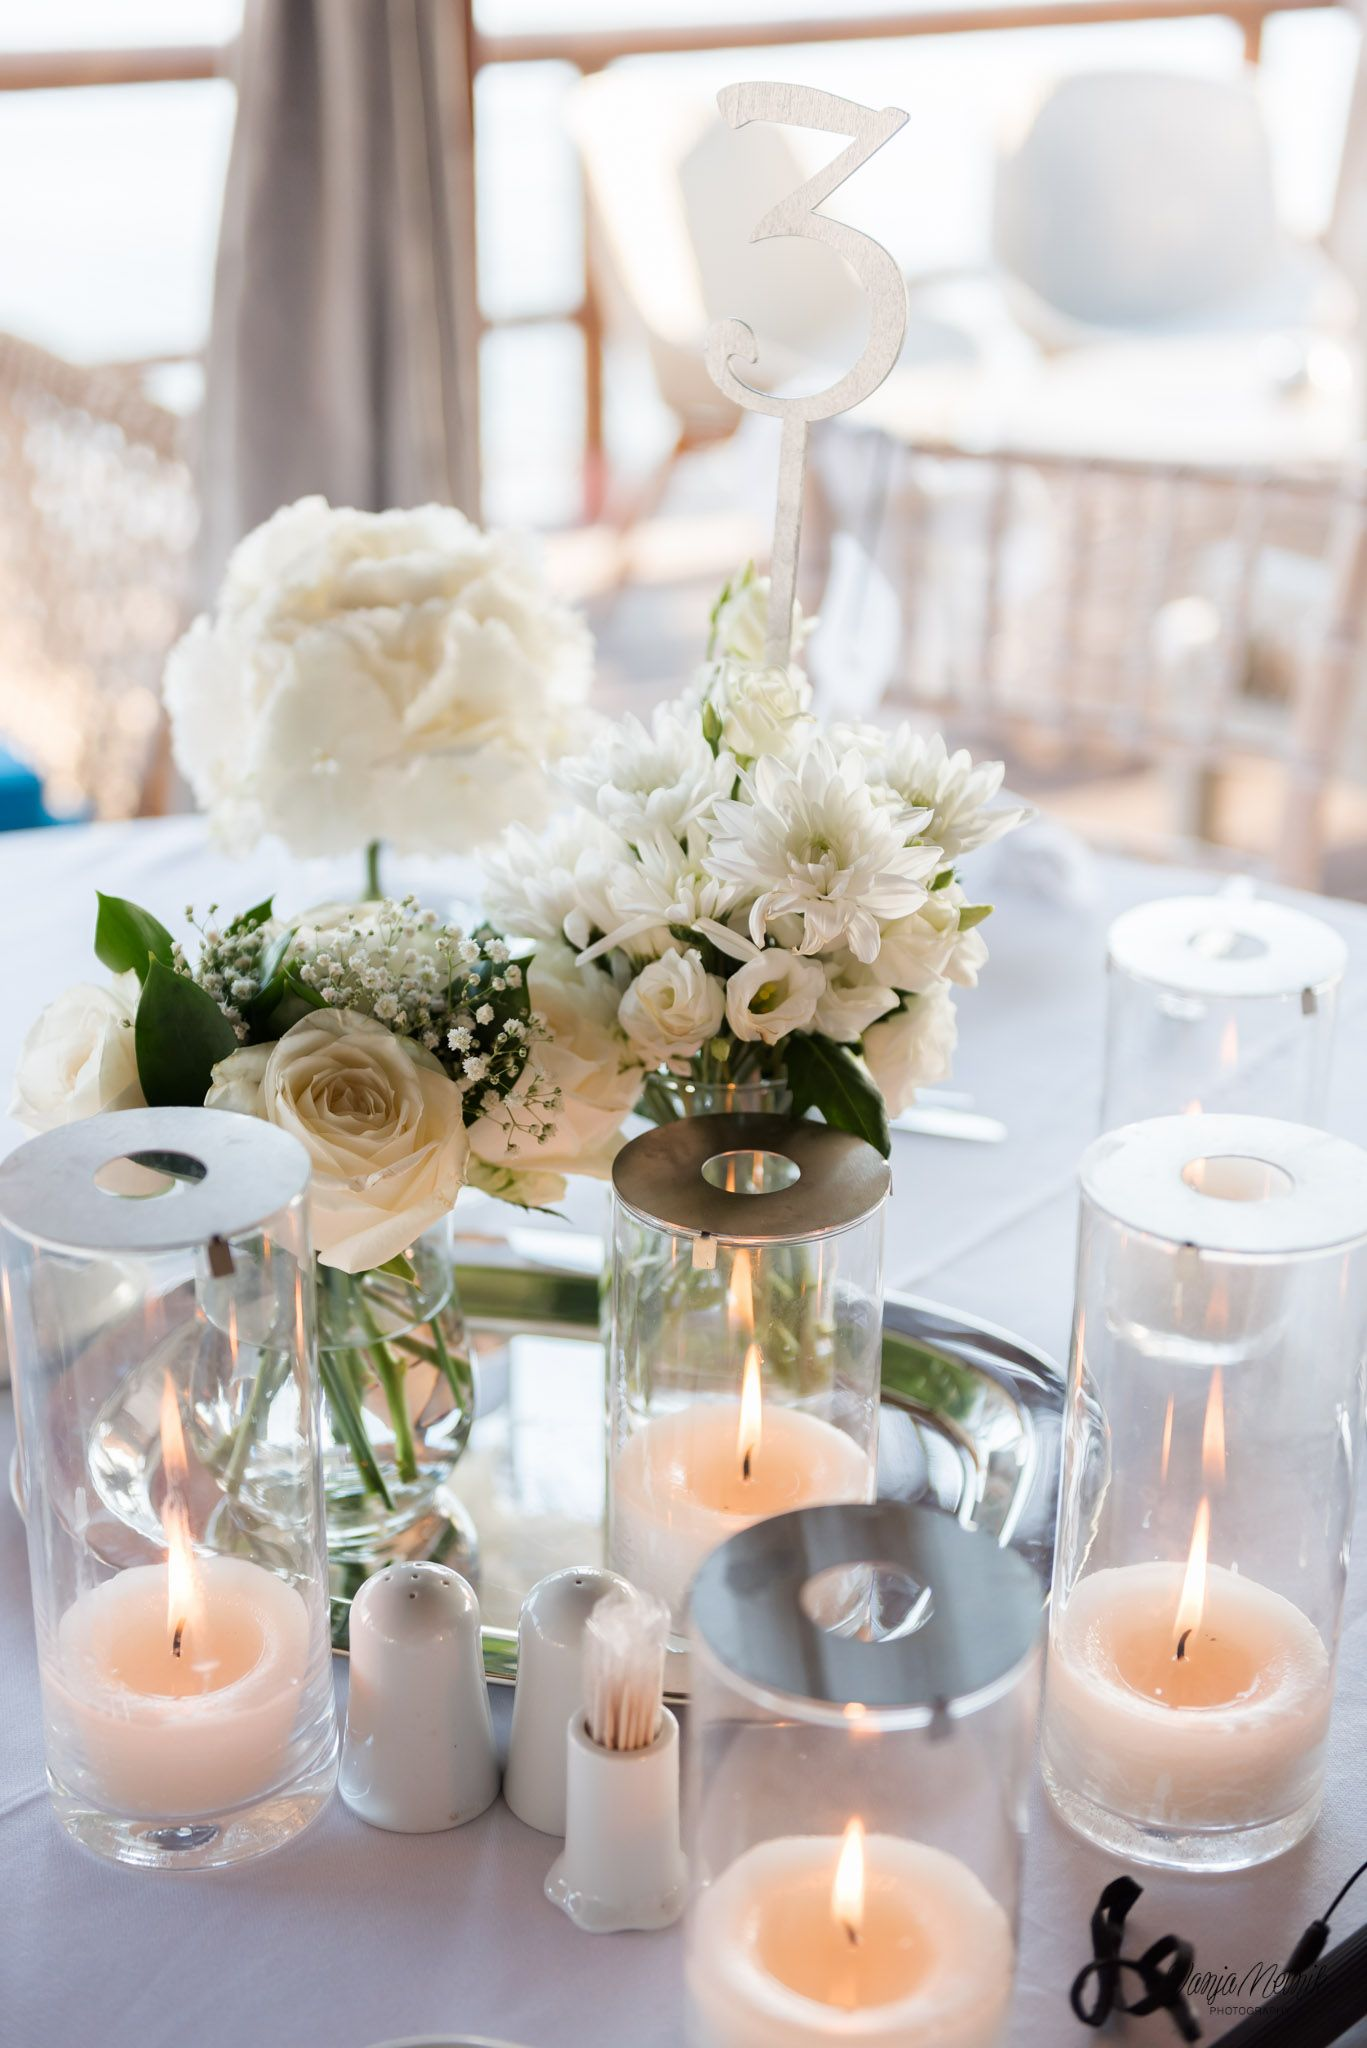 Candles light joy flowers design art moments memories the diamond rock weddings is based in santorini specialists on events wedding events in santorini island greeceding event planning company in mightylinksfo